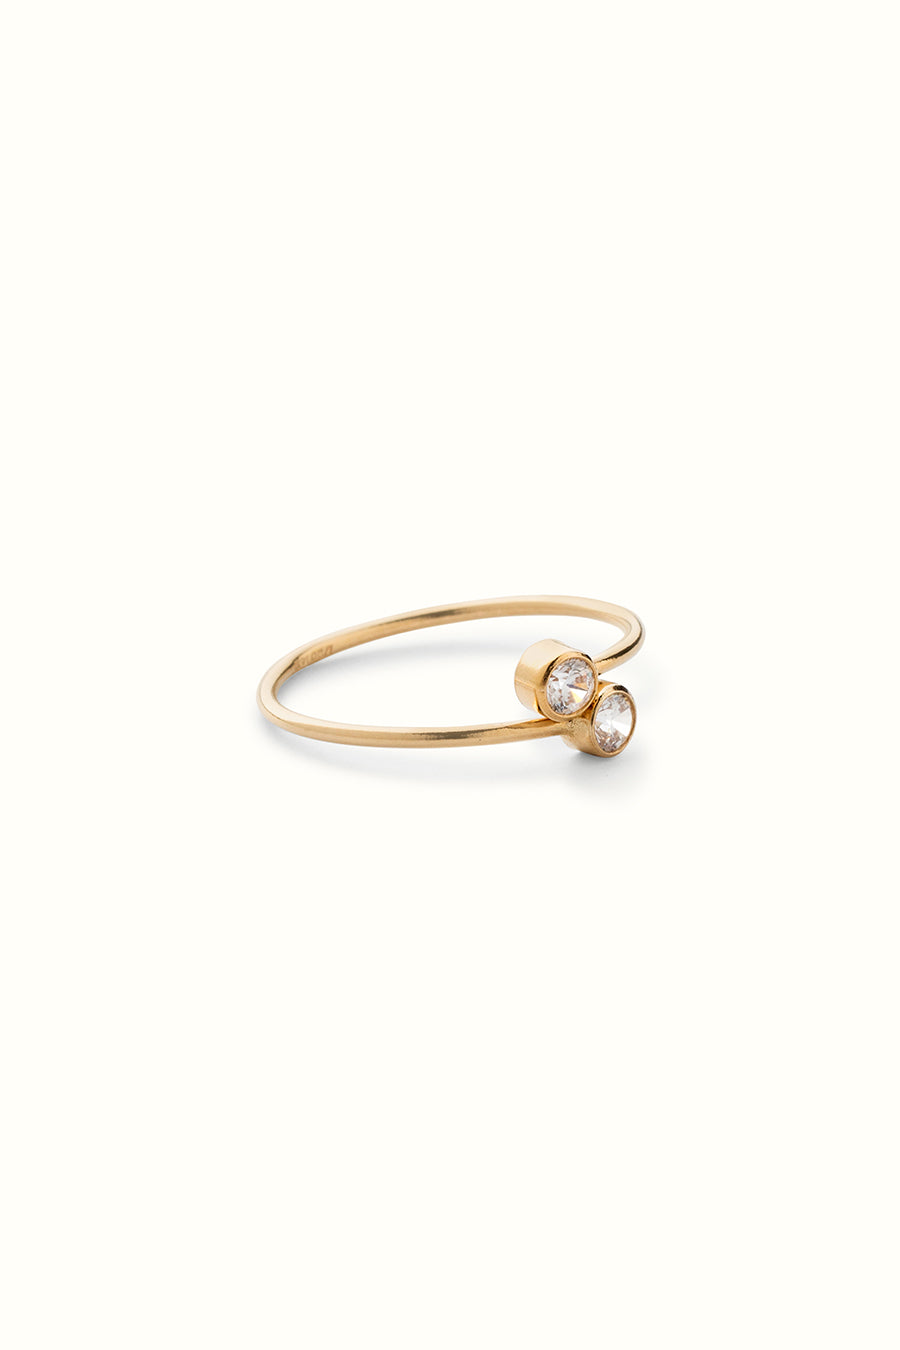 a gold filled fine adjustable finger ring with two zirconia gemstones lying on a white surface